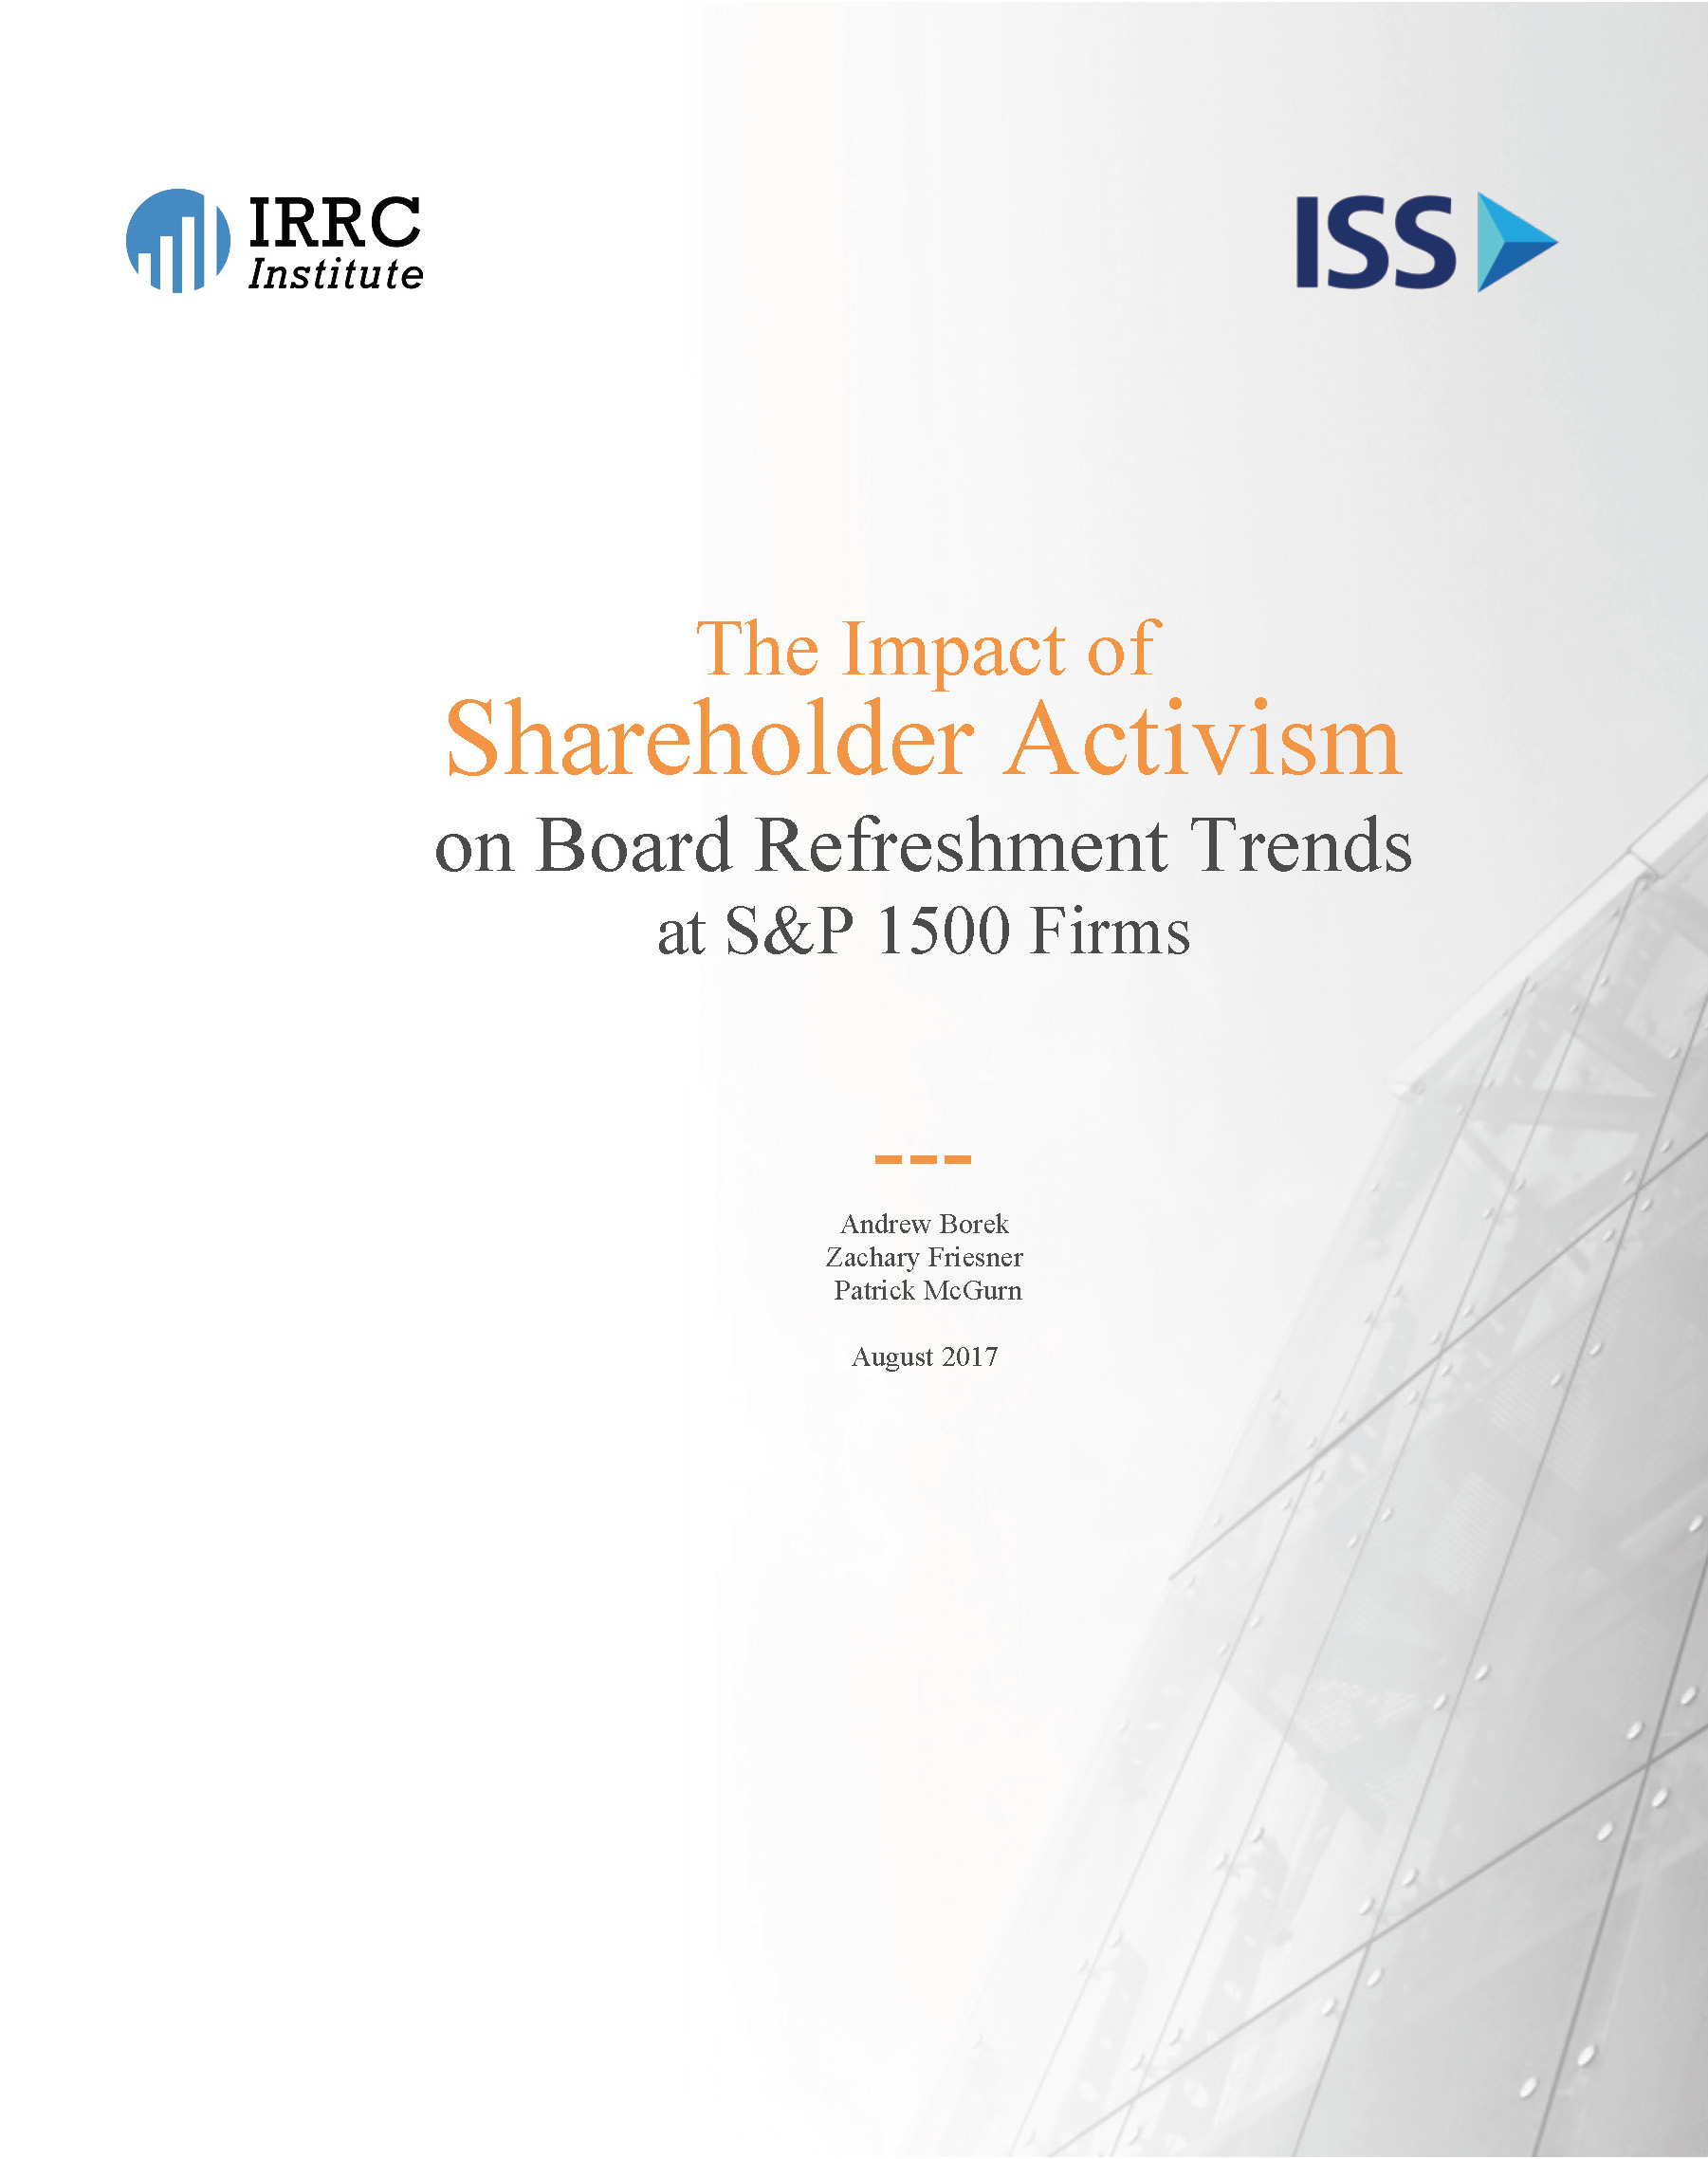 The Impact of Shareholder Activism on Board Refreshment Trends at S&P 1500 Firms